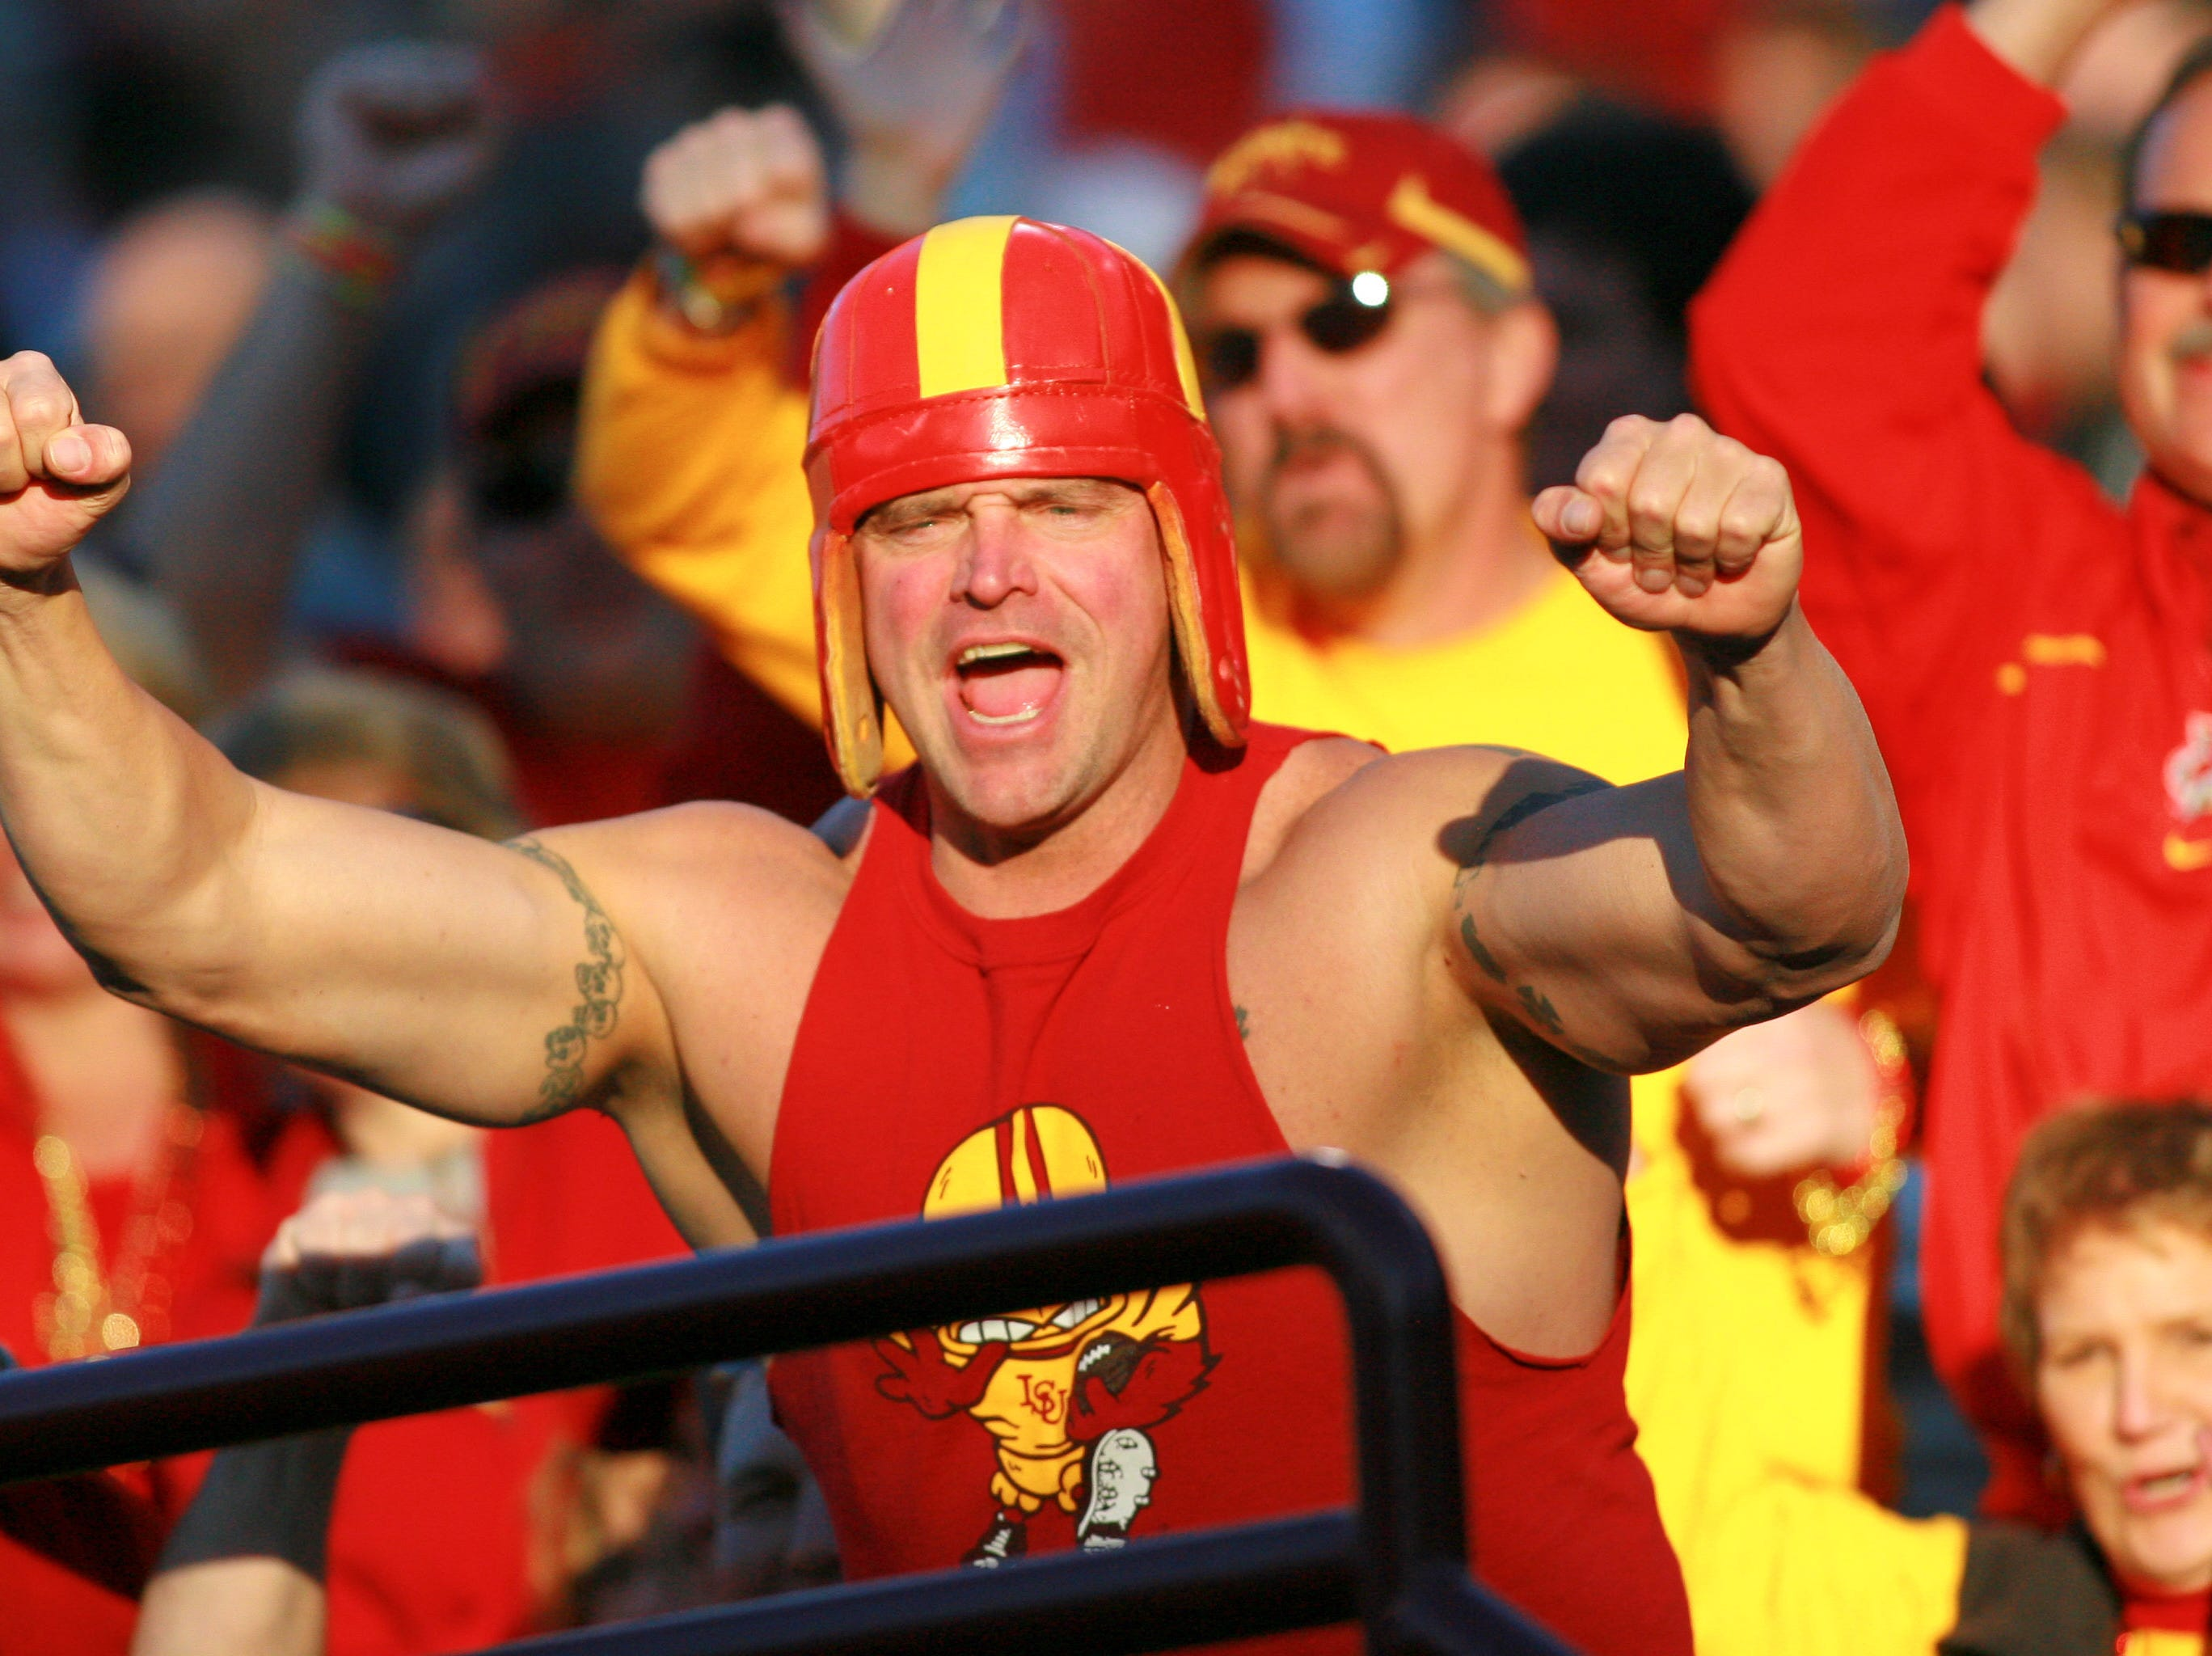 Dec 31, 2009; Tempe, AZ, USA; An Iowa State Cyclones fan cheers on his team in the 1st quarter of a game against the Minnesota Golden Gophers in the 2009 Insight Bowl at Sun Devil Stadium.  Mandatory Credit: Chris Morrison-USA TODAY Sports